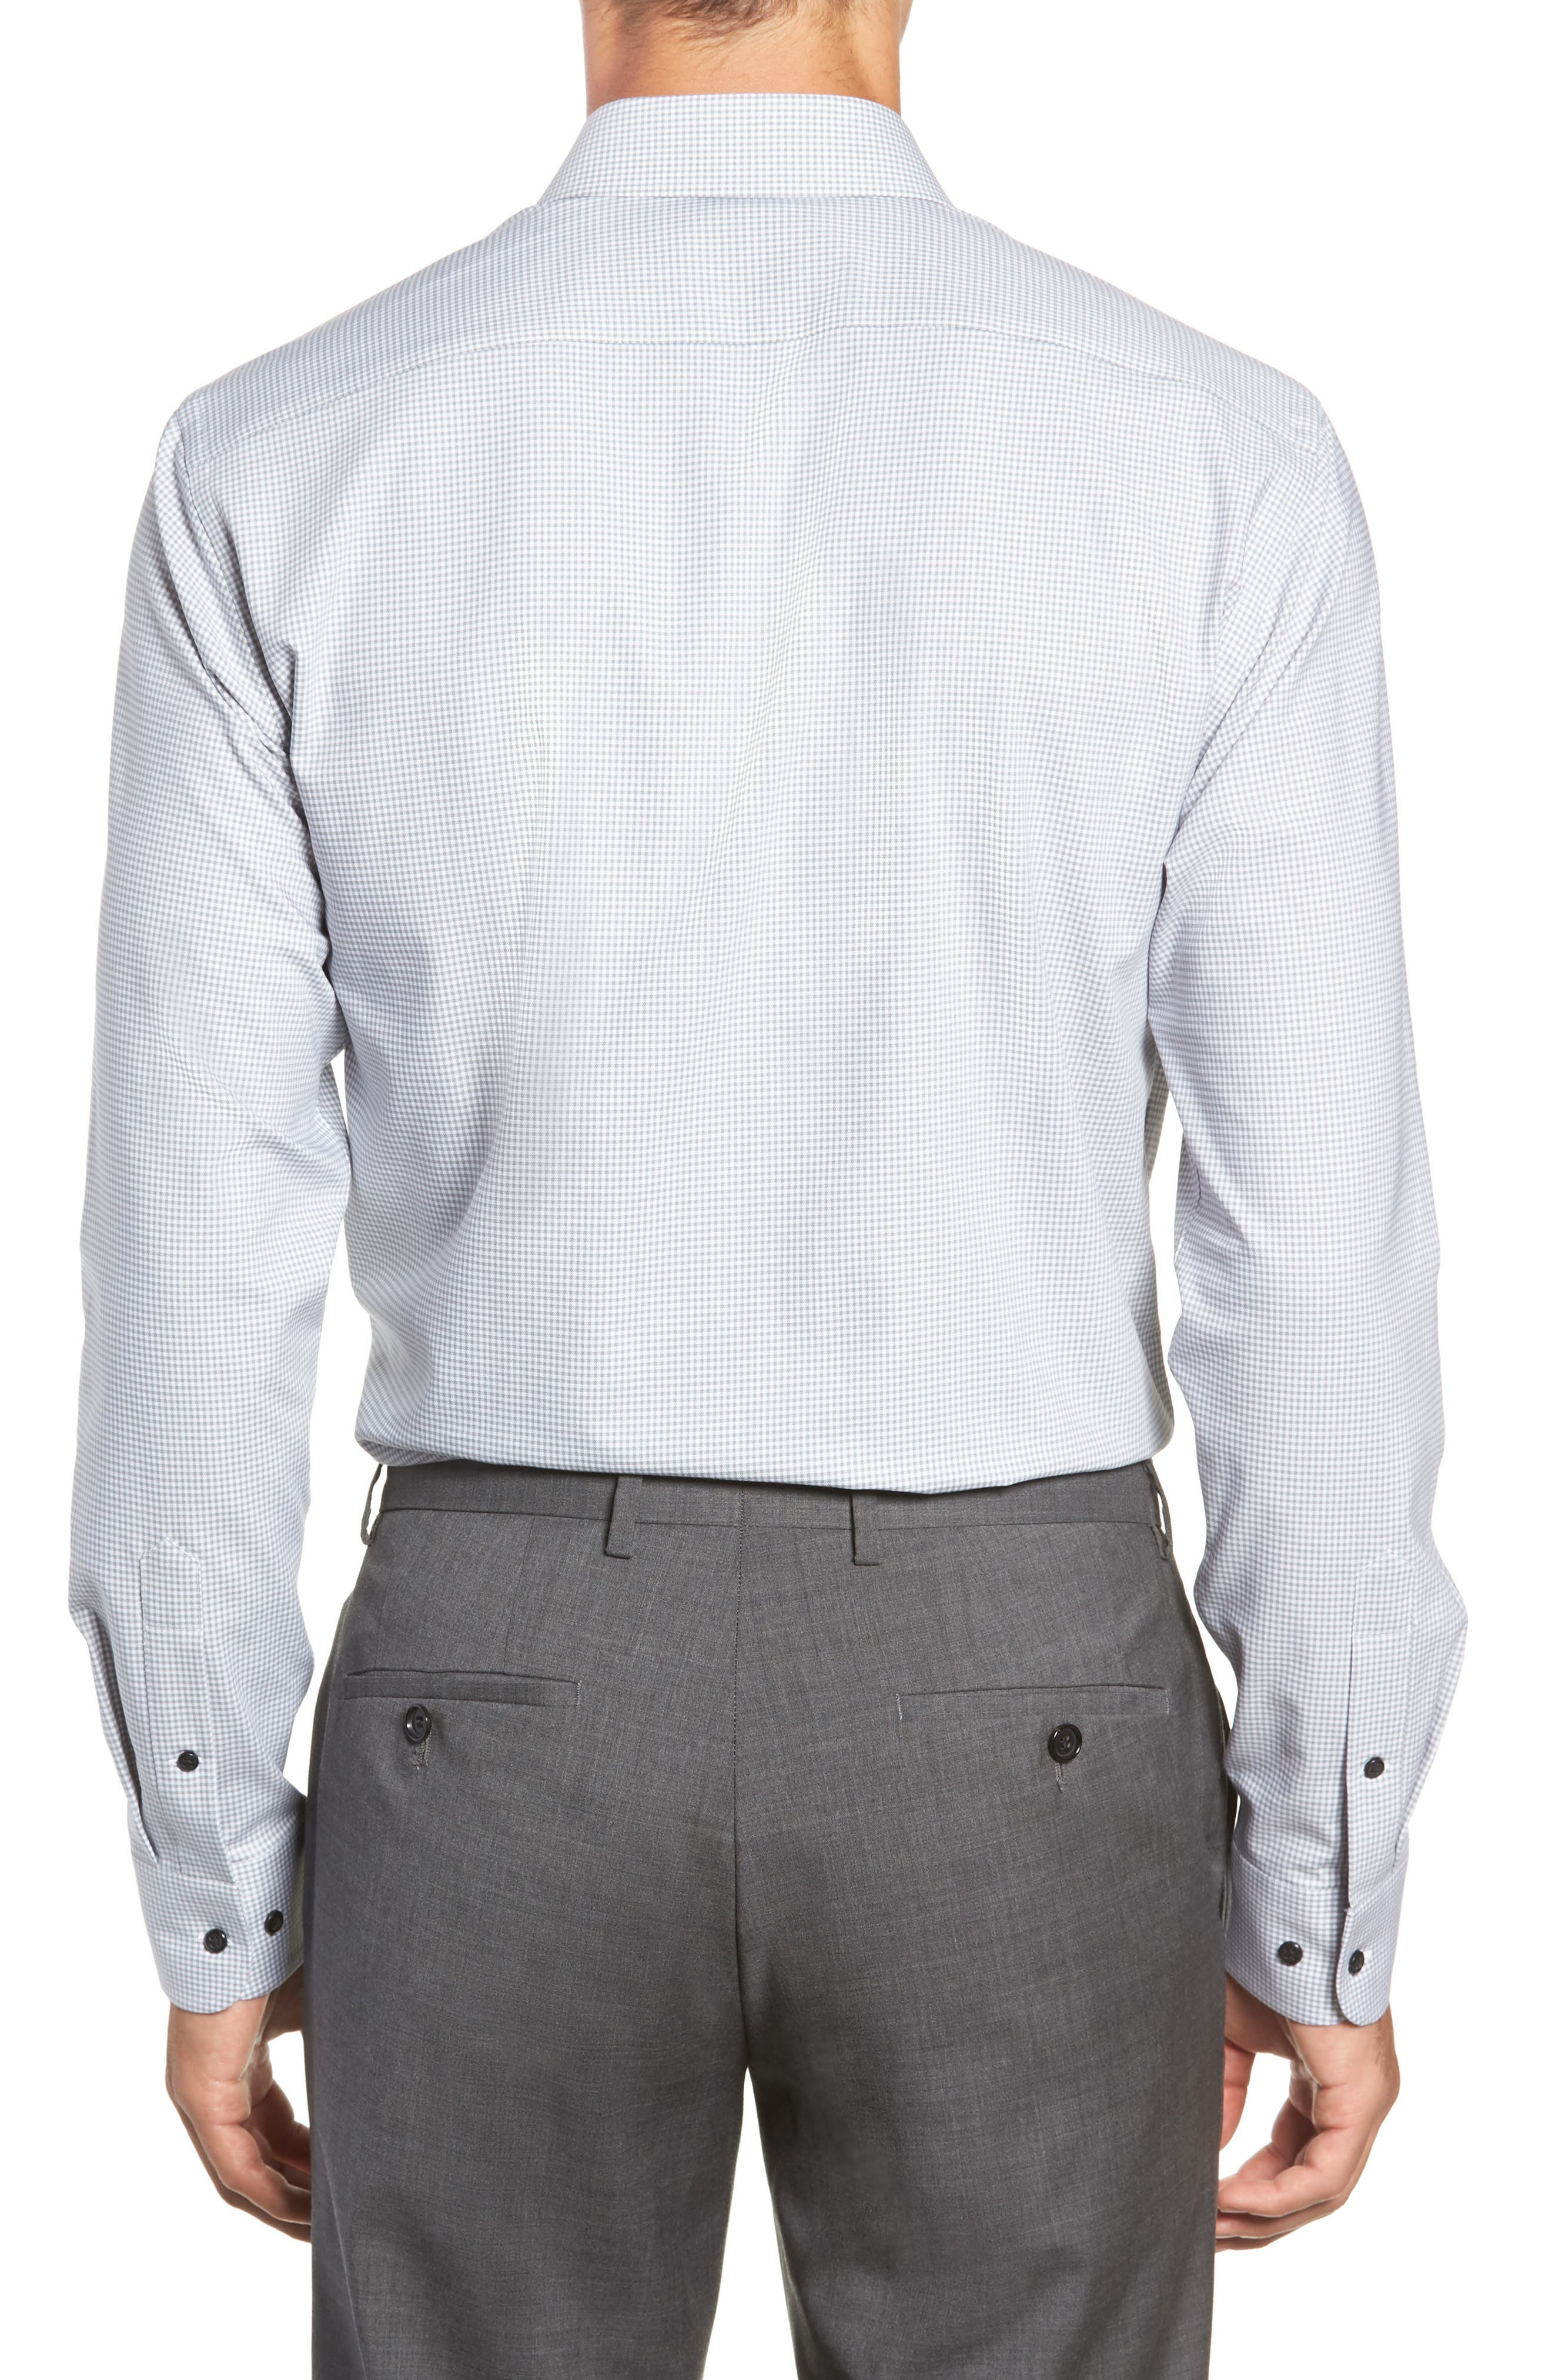 Tech-Smart Trim Fit Stretch Check Dress Shirt,                             Alternate thumbnail 3, color,                             GREY SLEET